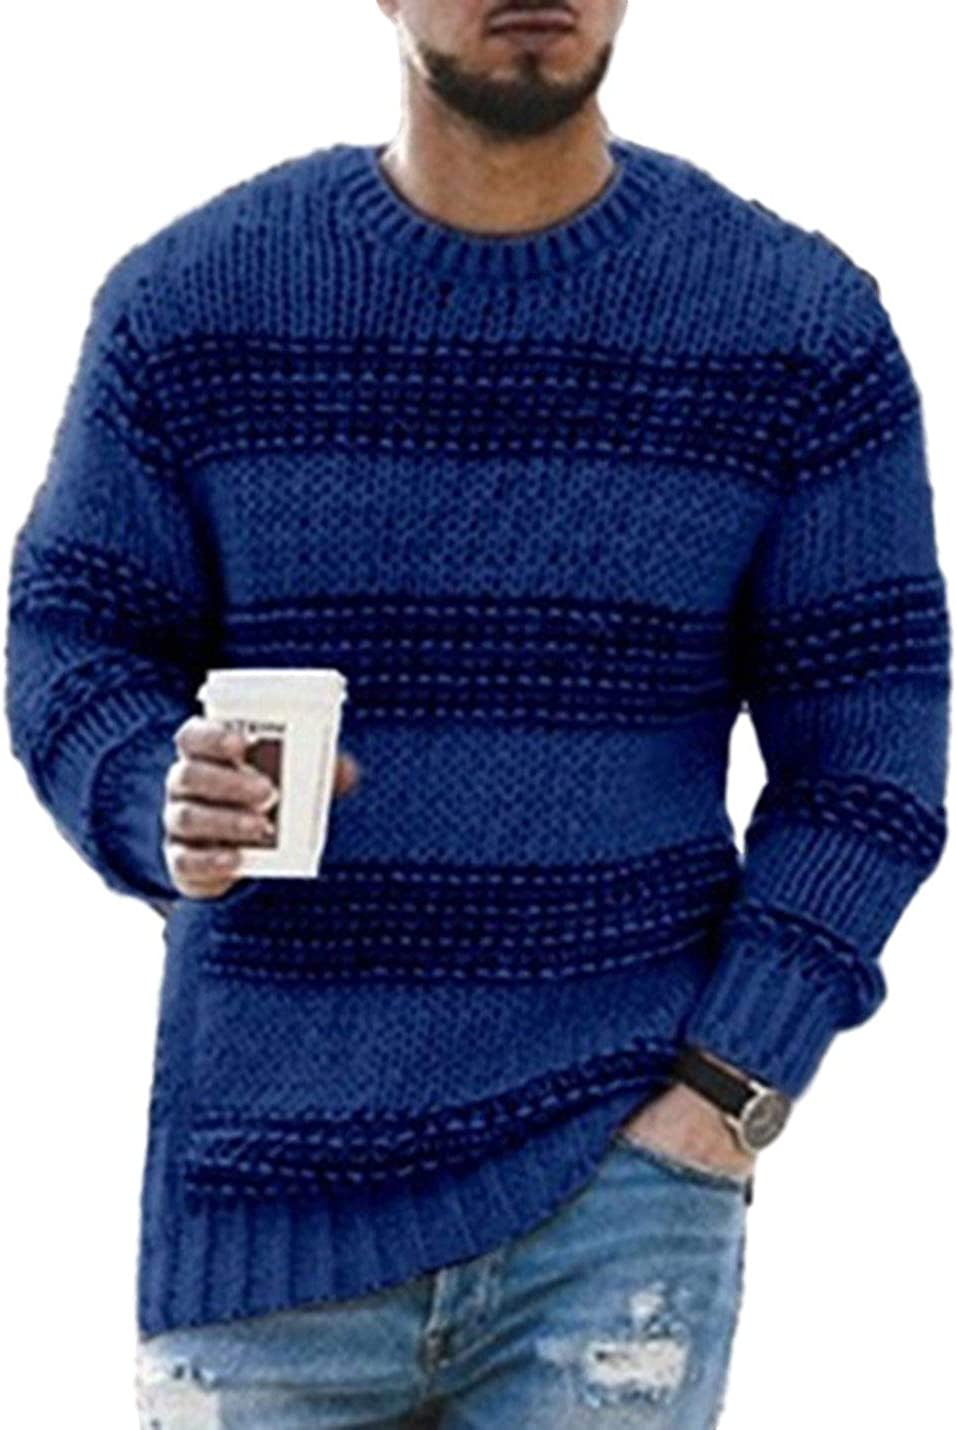 AMEBELLE Men's Comfy Casual Striped Knitted Pullovers Warm Crew Neck Sweater